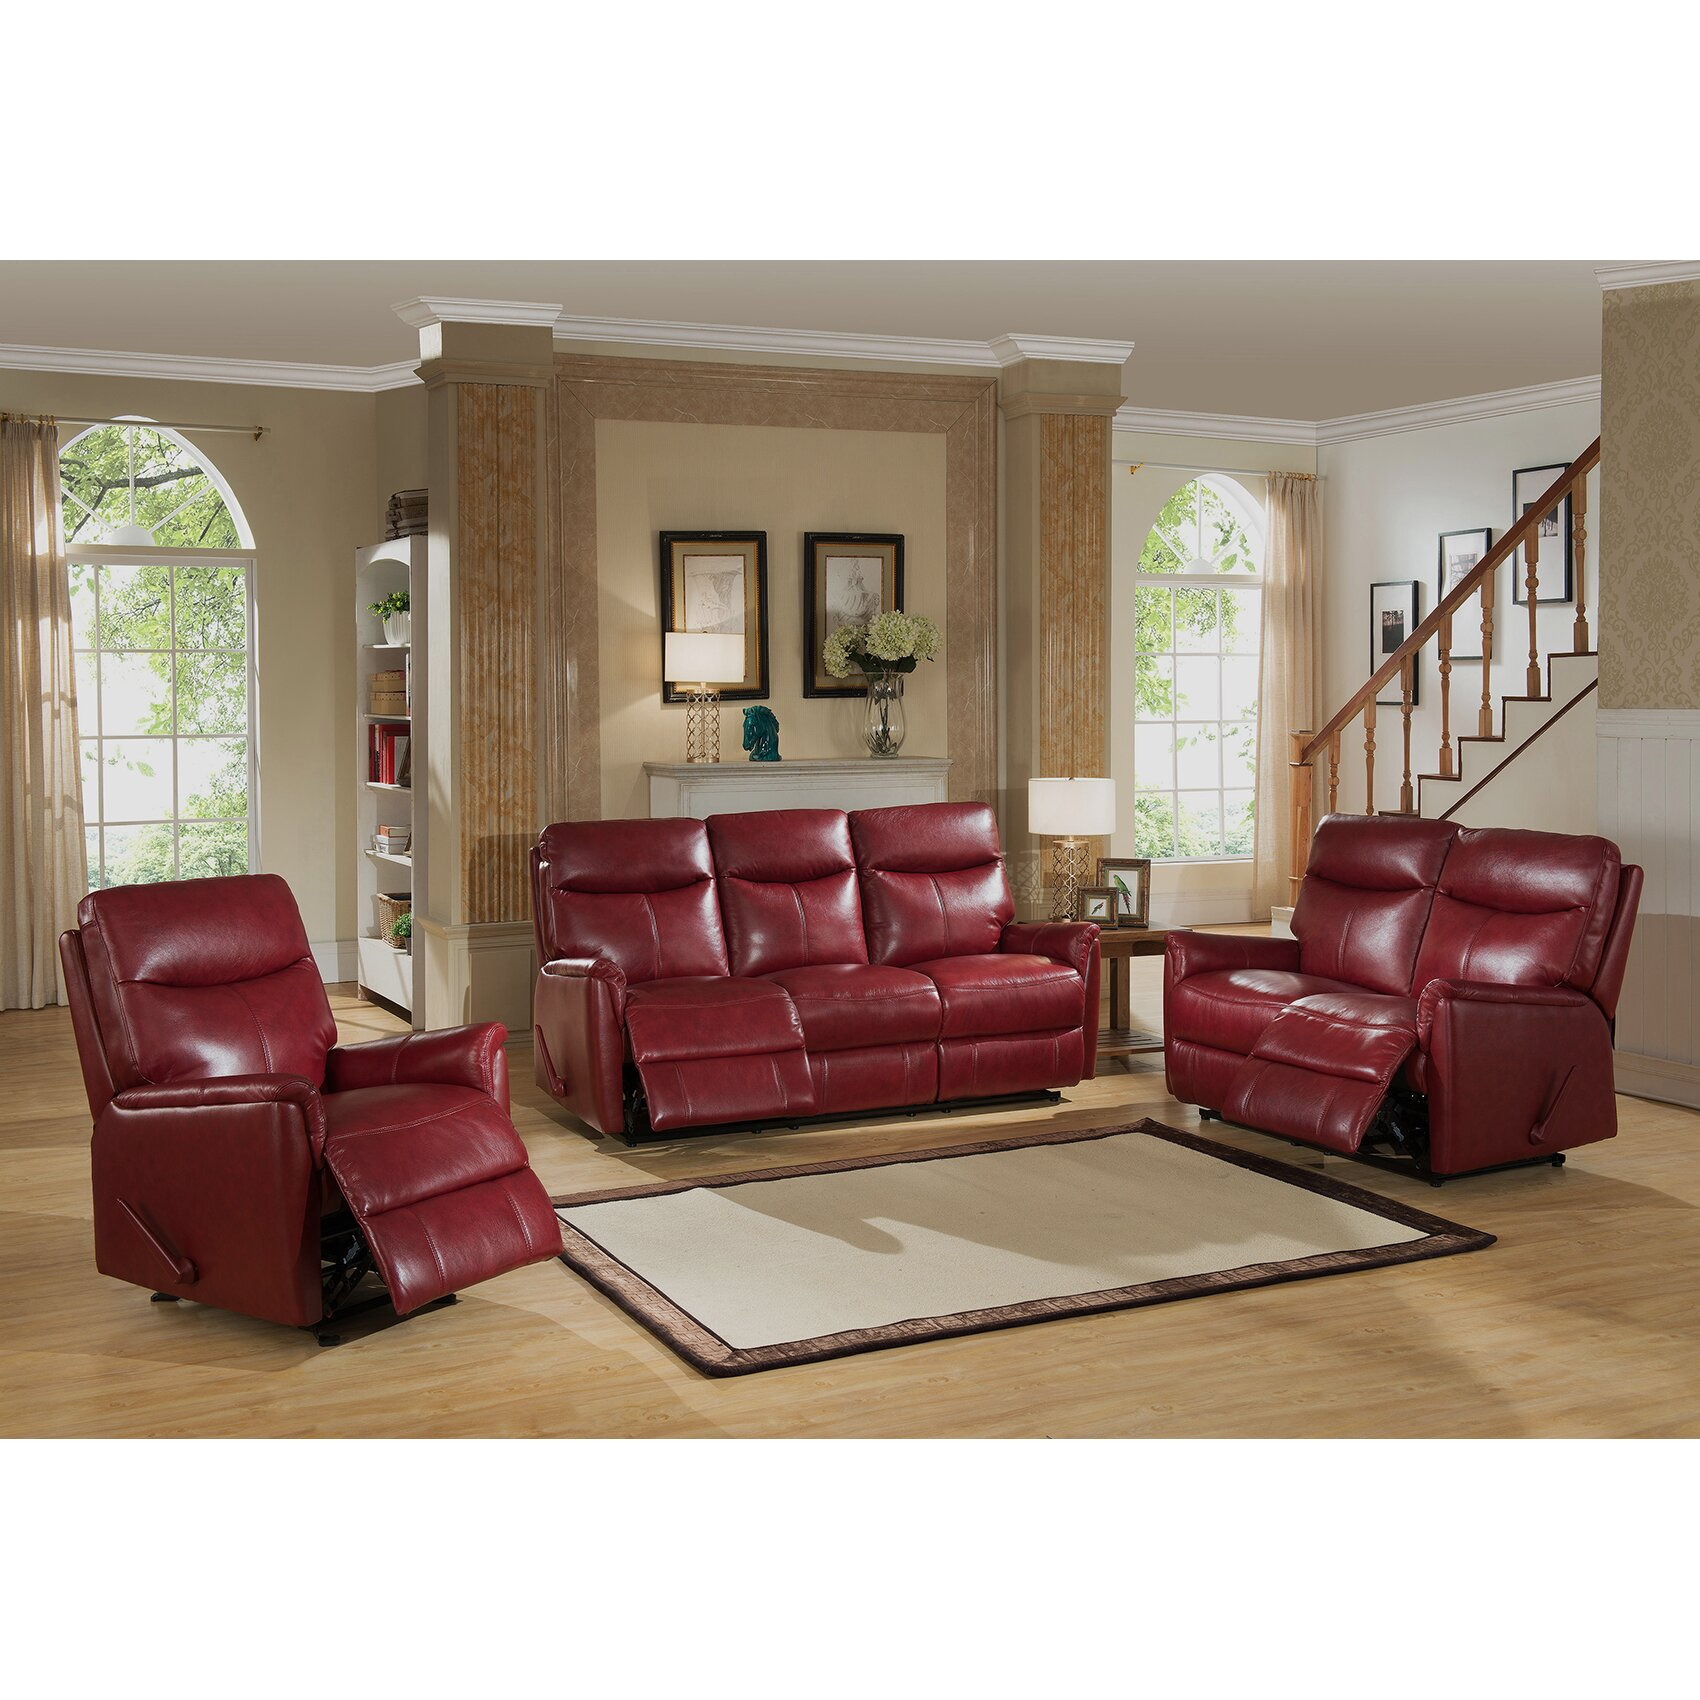 Amax napa 3 piece leather lay flat reclining living room for Living room sets